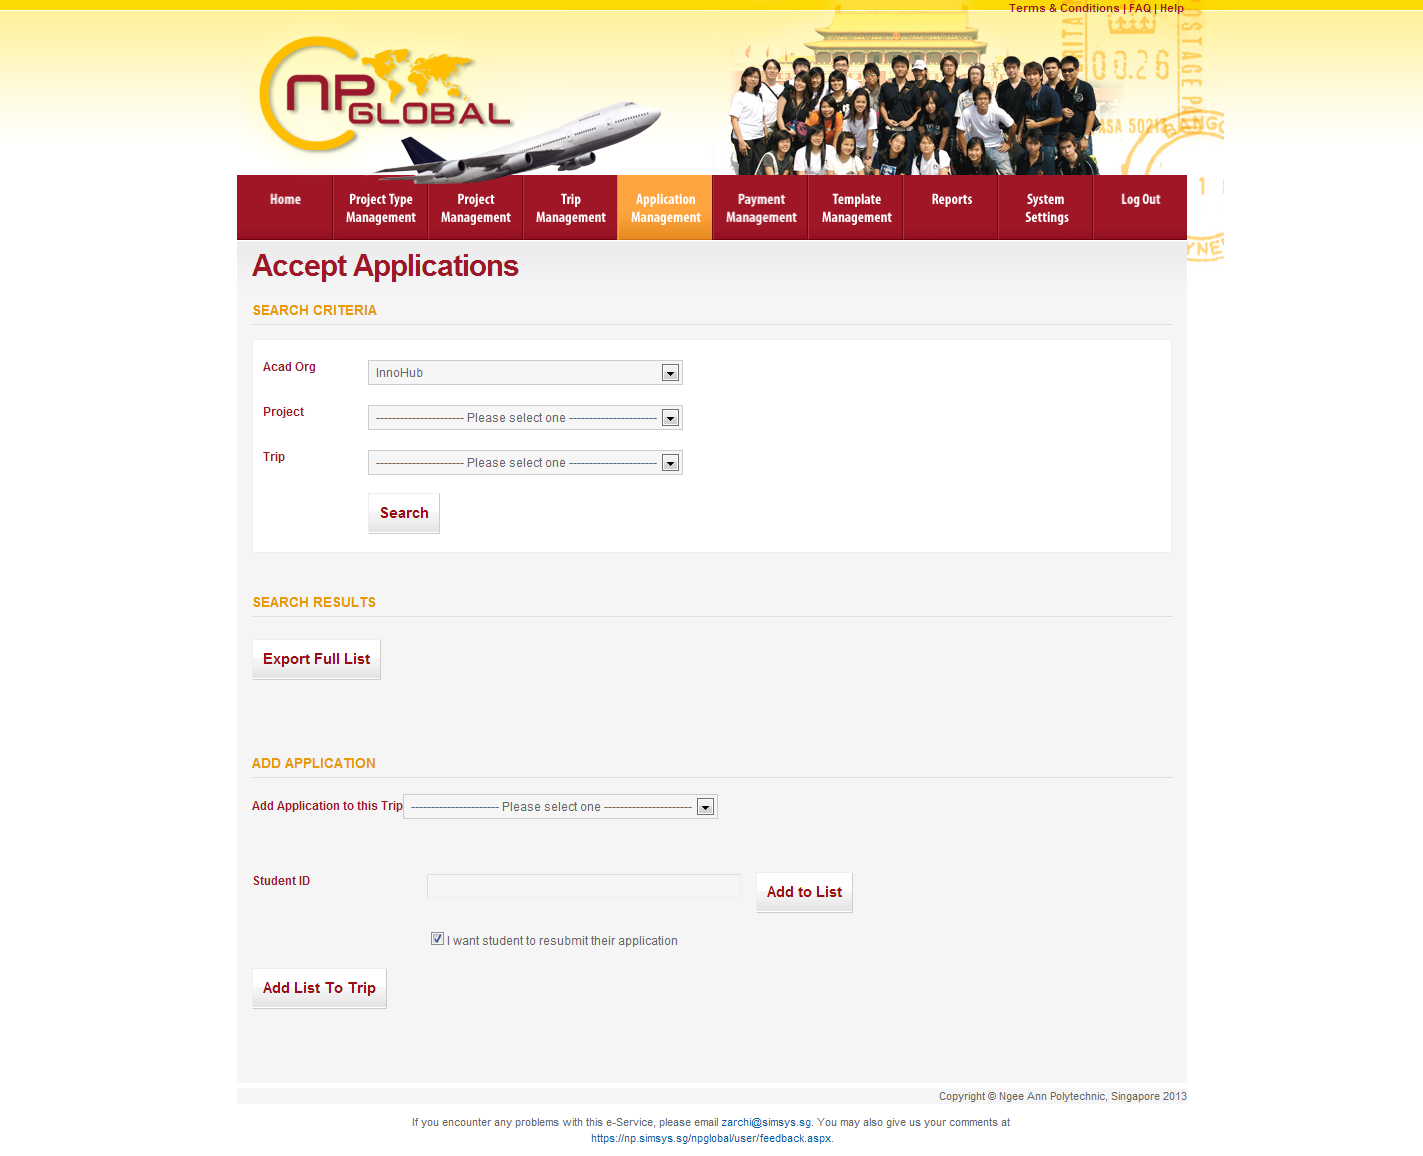 Ngee Ann Polytechnic - Overseas Student Project Portal Image 3